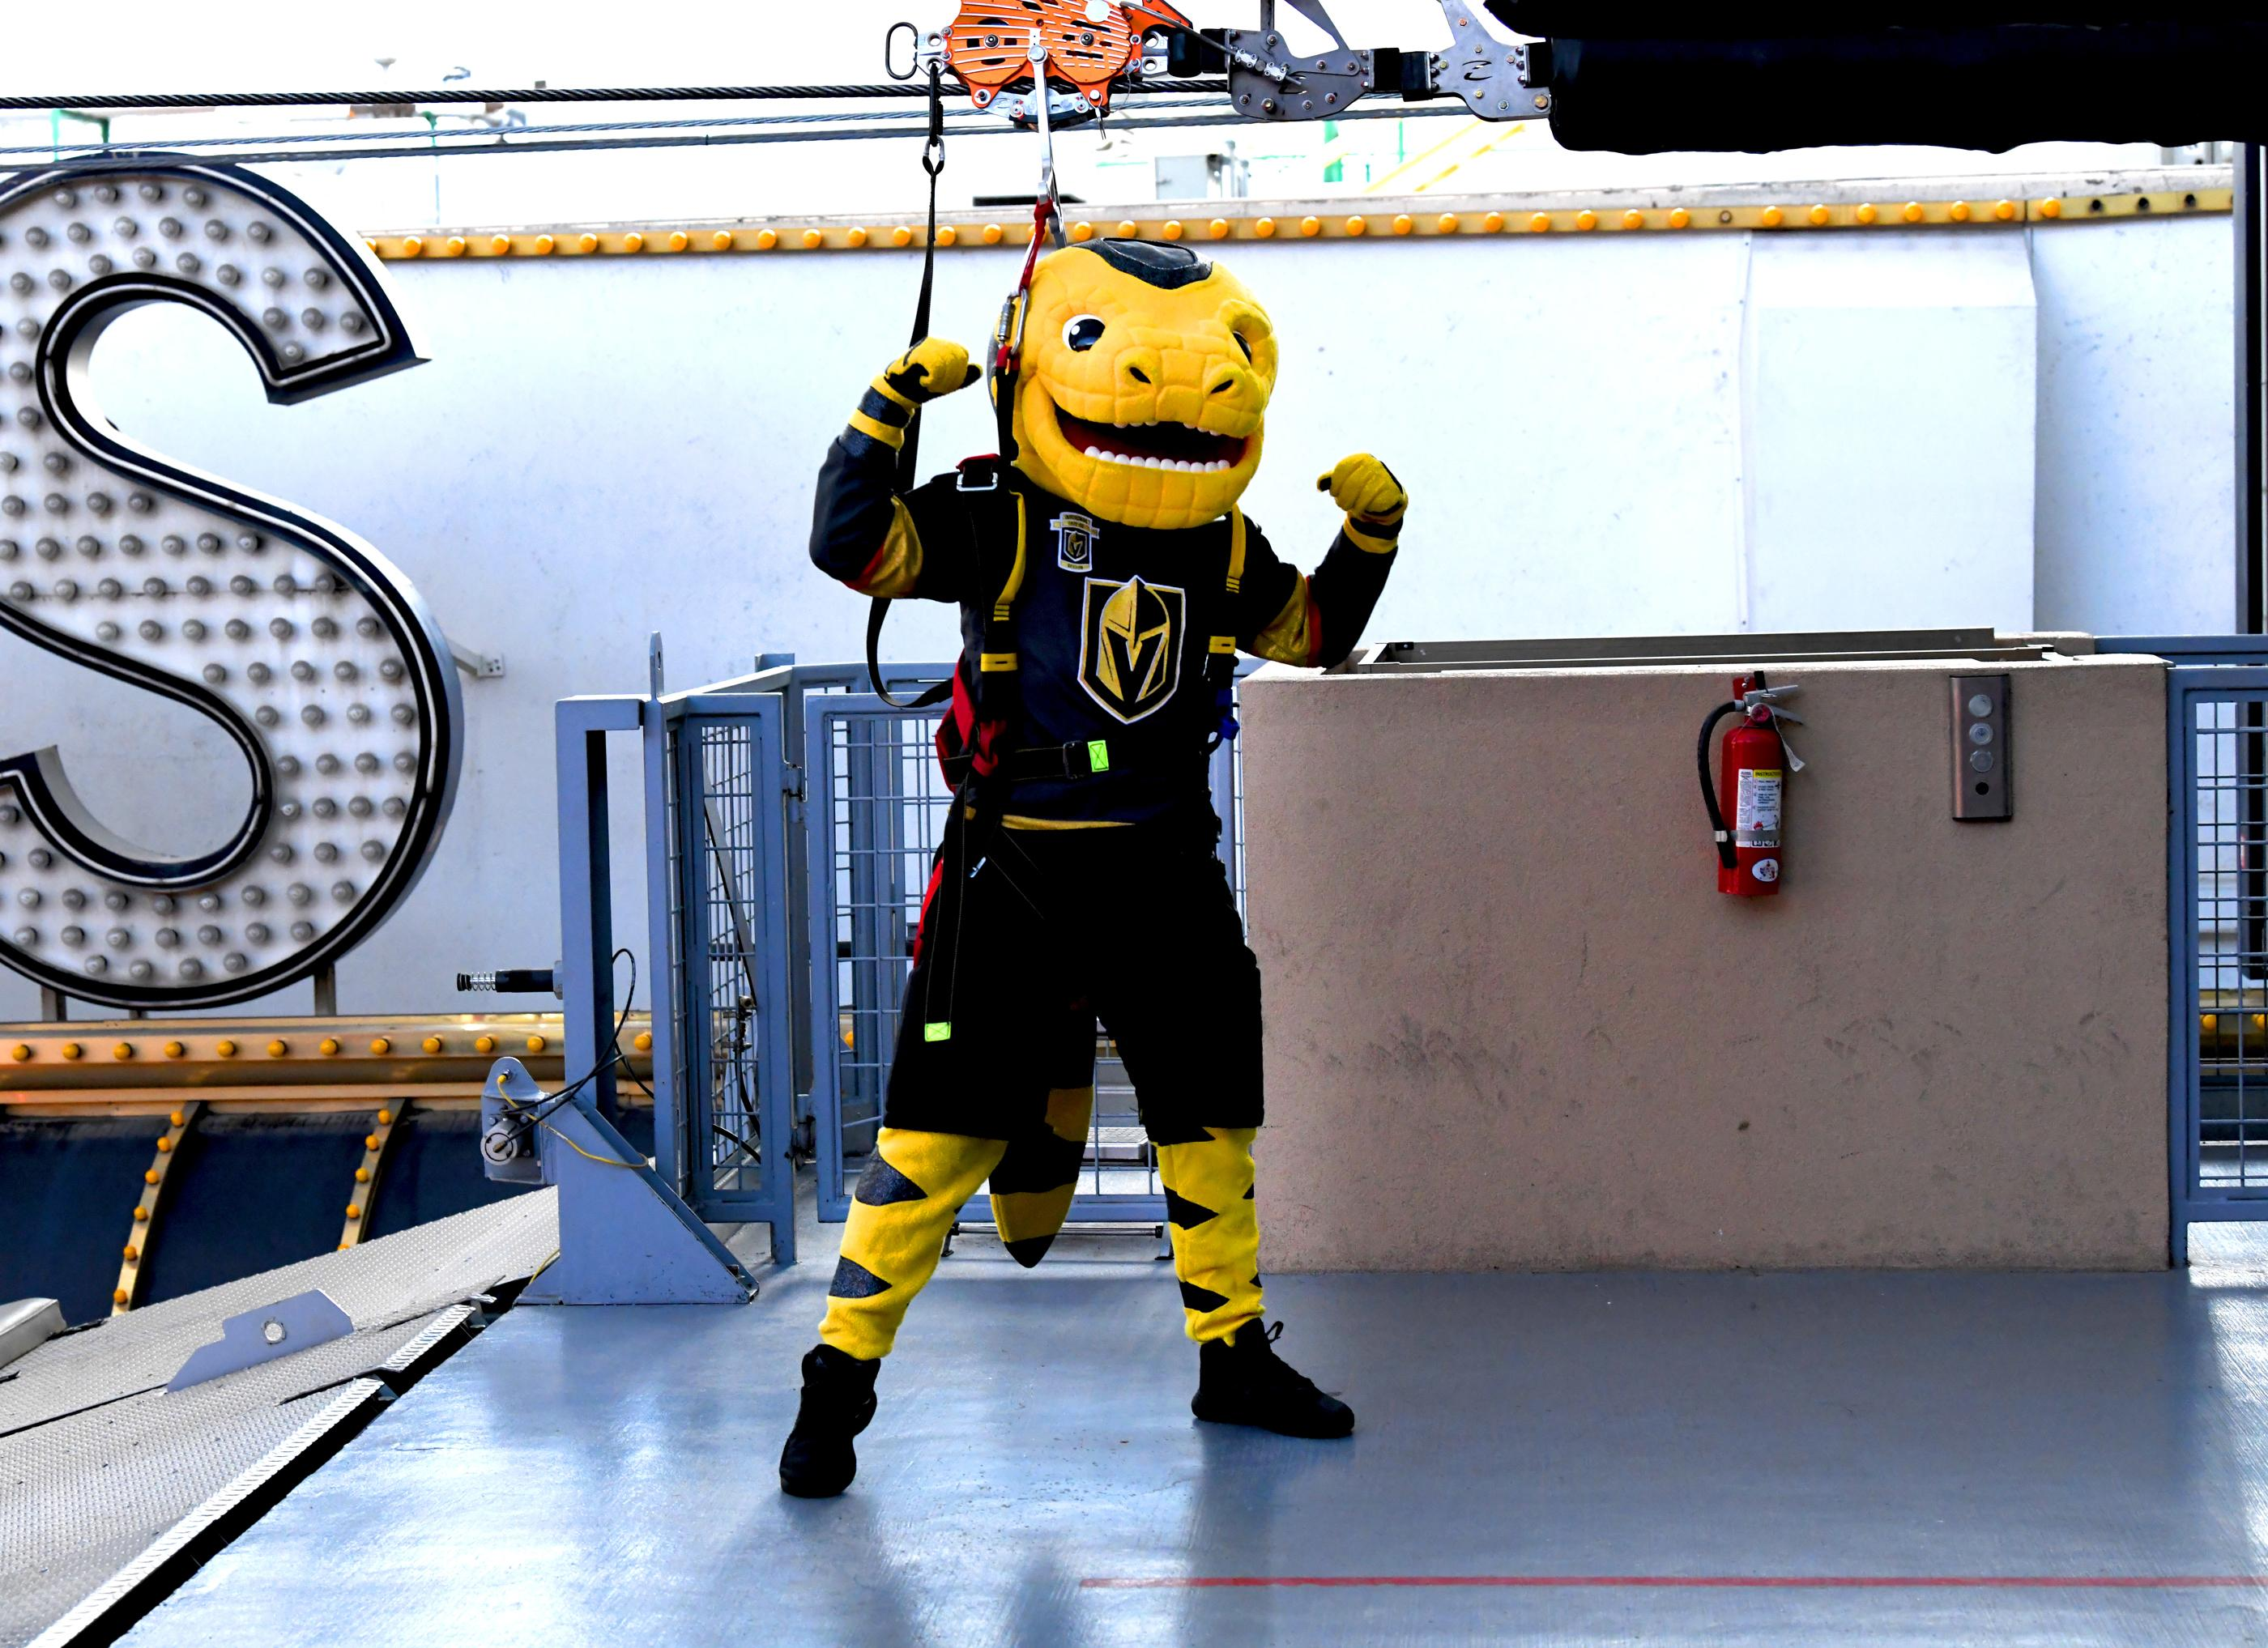 The Golden Knights host a Fan Fest with the D Las Vegas and Fremont Street Experience. In this photo Chance the Gila Monster mascot of the Las Vegas Golden Knights professional hockey team arrives at the Fan Fest via the Slotzilla zip line at Fremont Street Experience. Sunday, January 14, 2017. CREDIT: Glenn Pinkerton/Las Vegas News Bureau